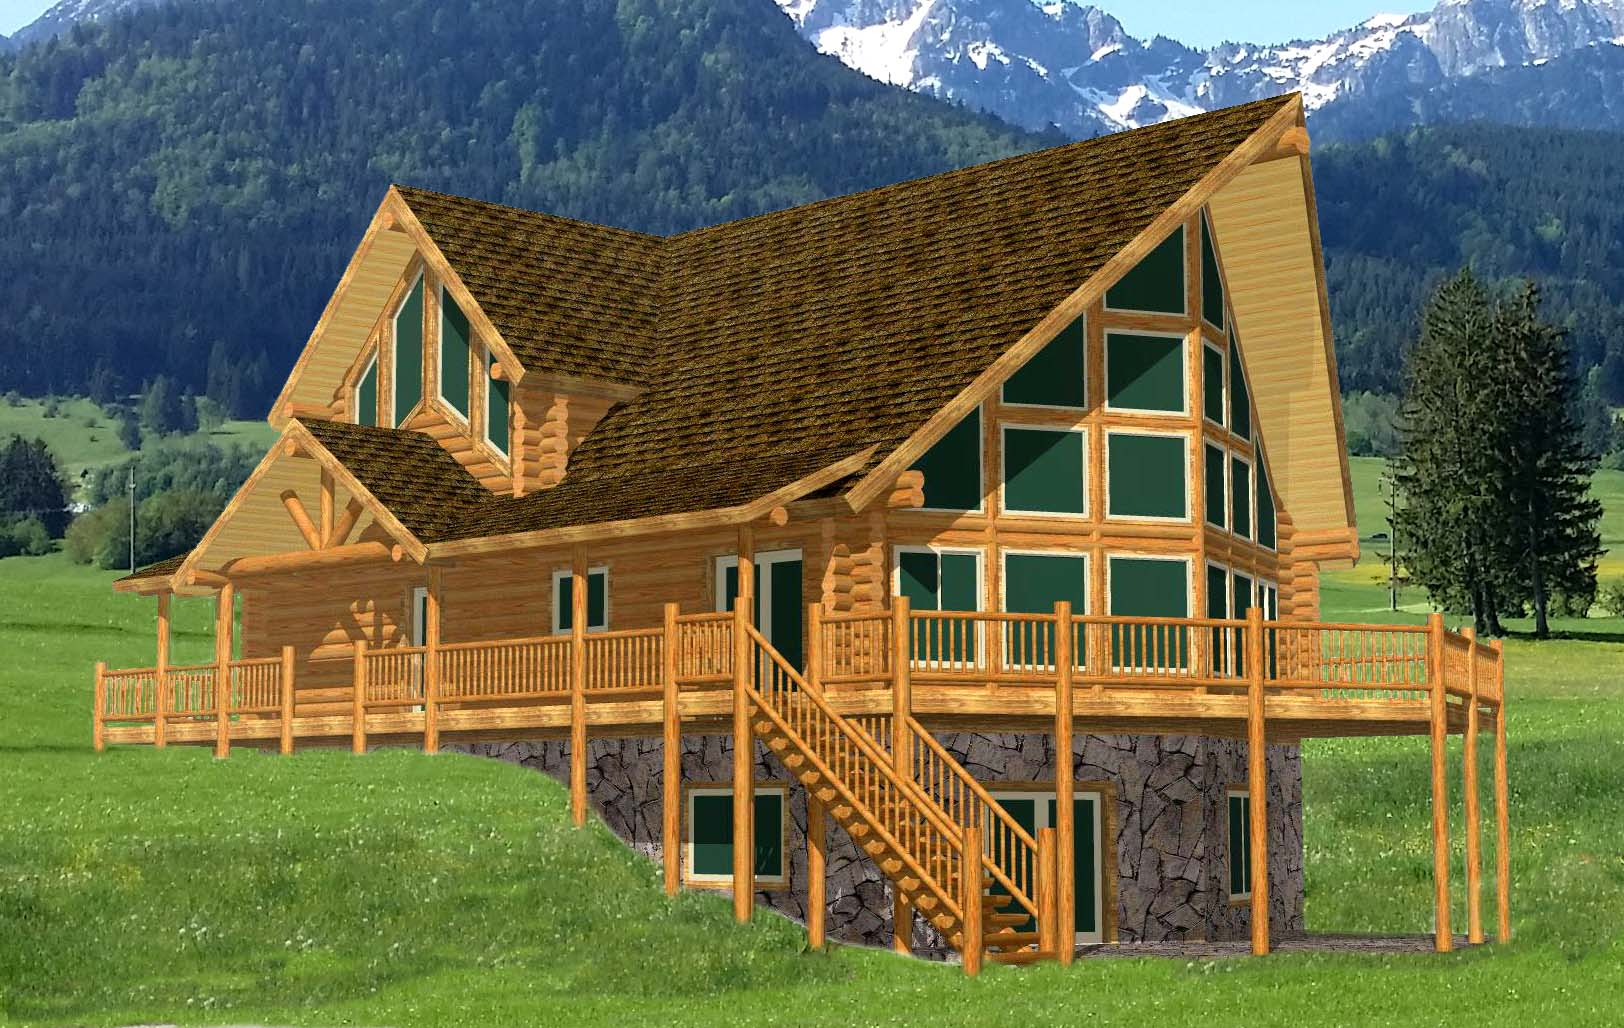 Yellowstone Chalet log cabin material package large home near grant tetons